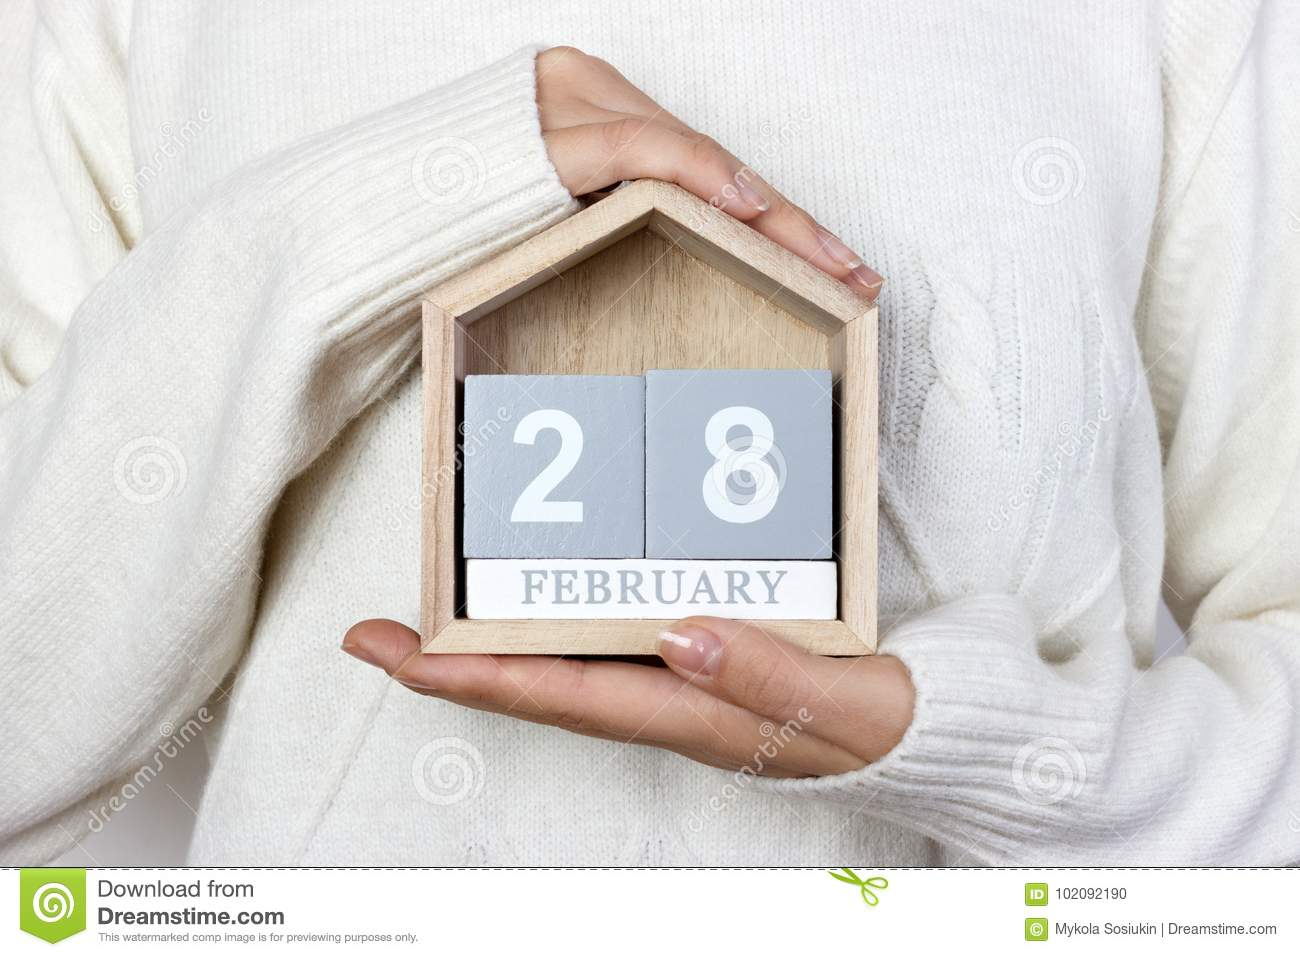 February 28 in the calendar. the girl is holding a wooden calendar. Rare Disease Day, Shrove Tuesday, International Pancake Day